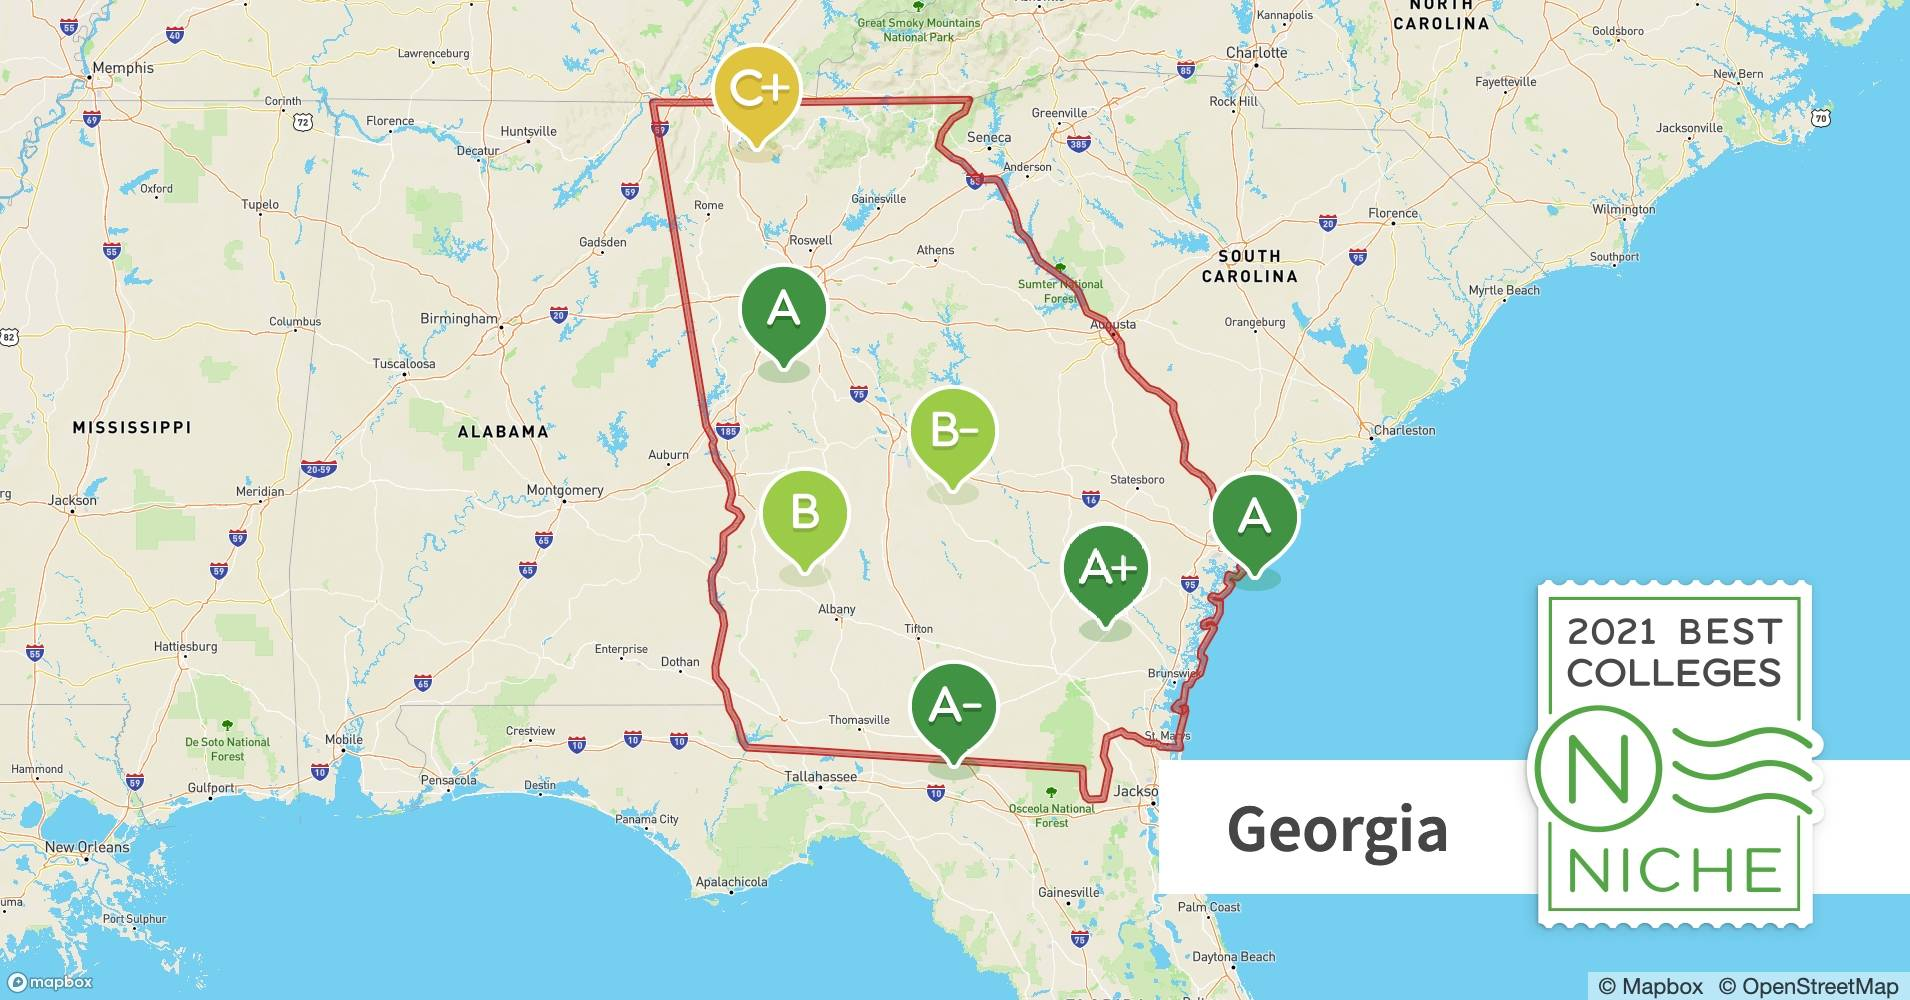 Colleges In Georgia Map 2021 Best Colleges in Georgia   Niche